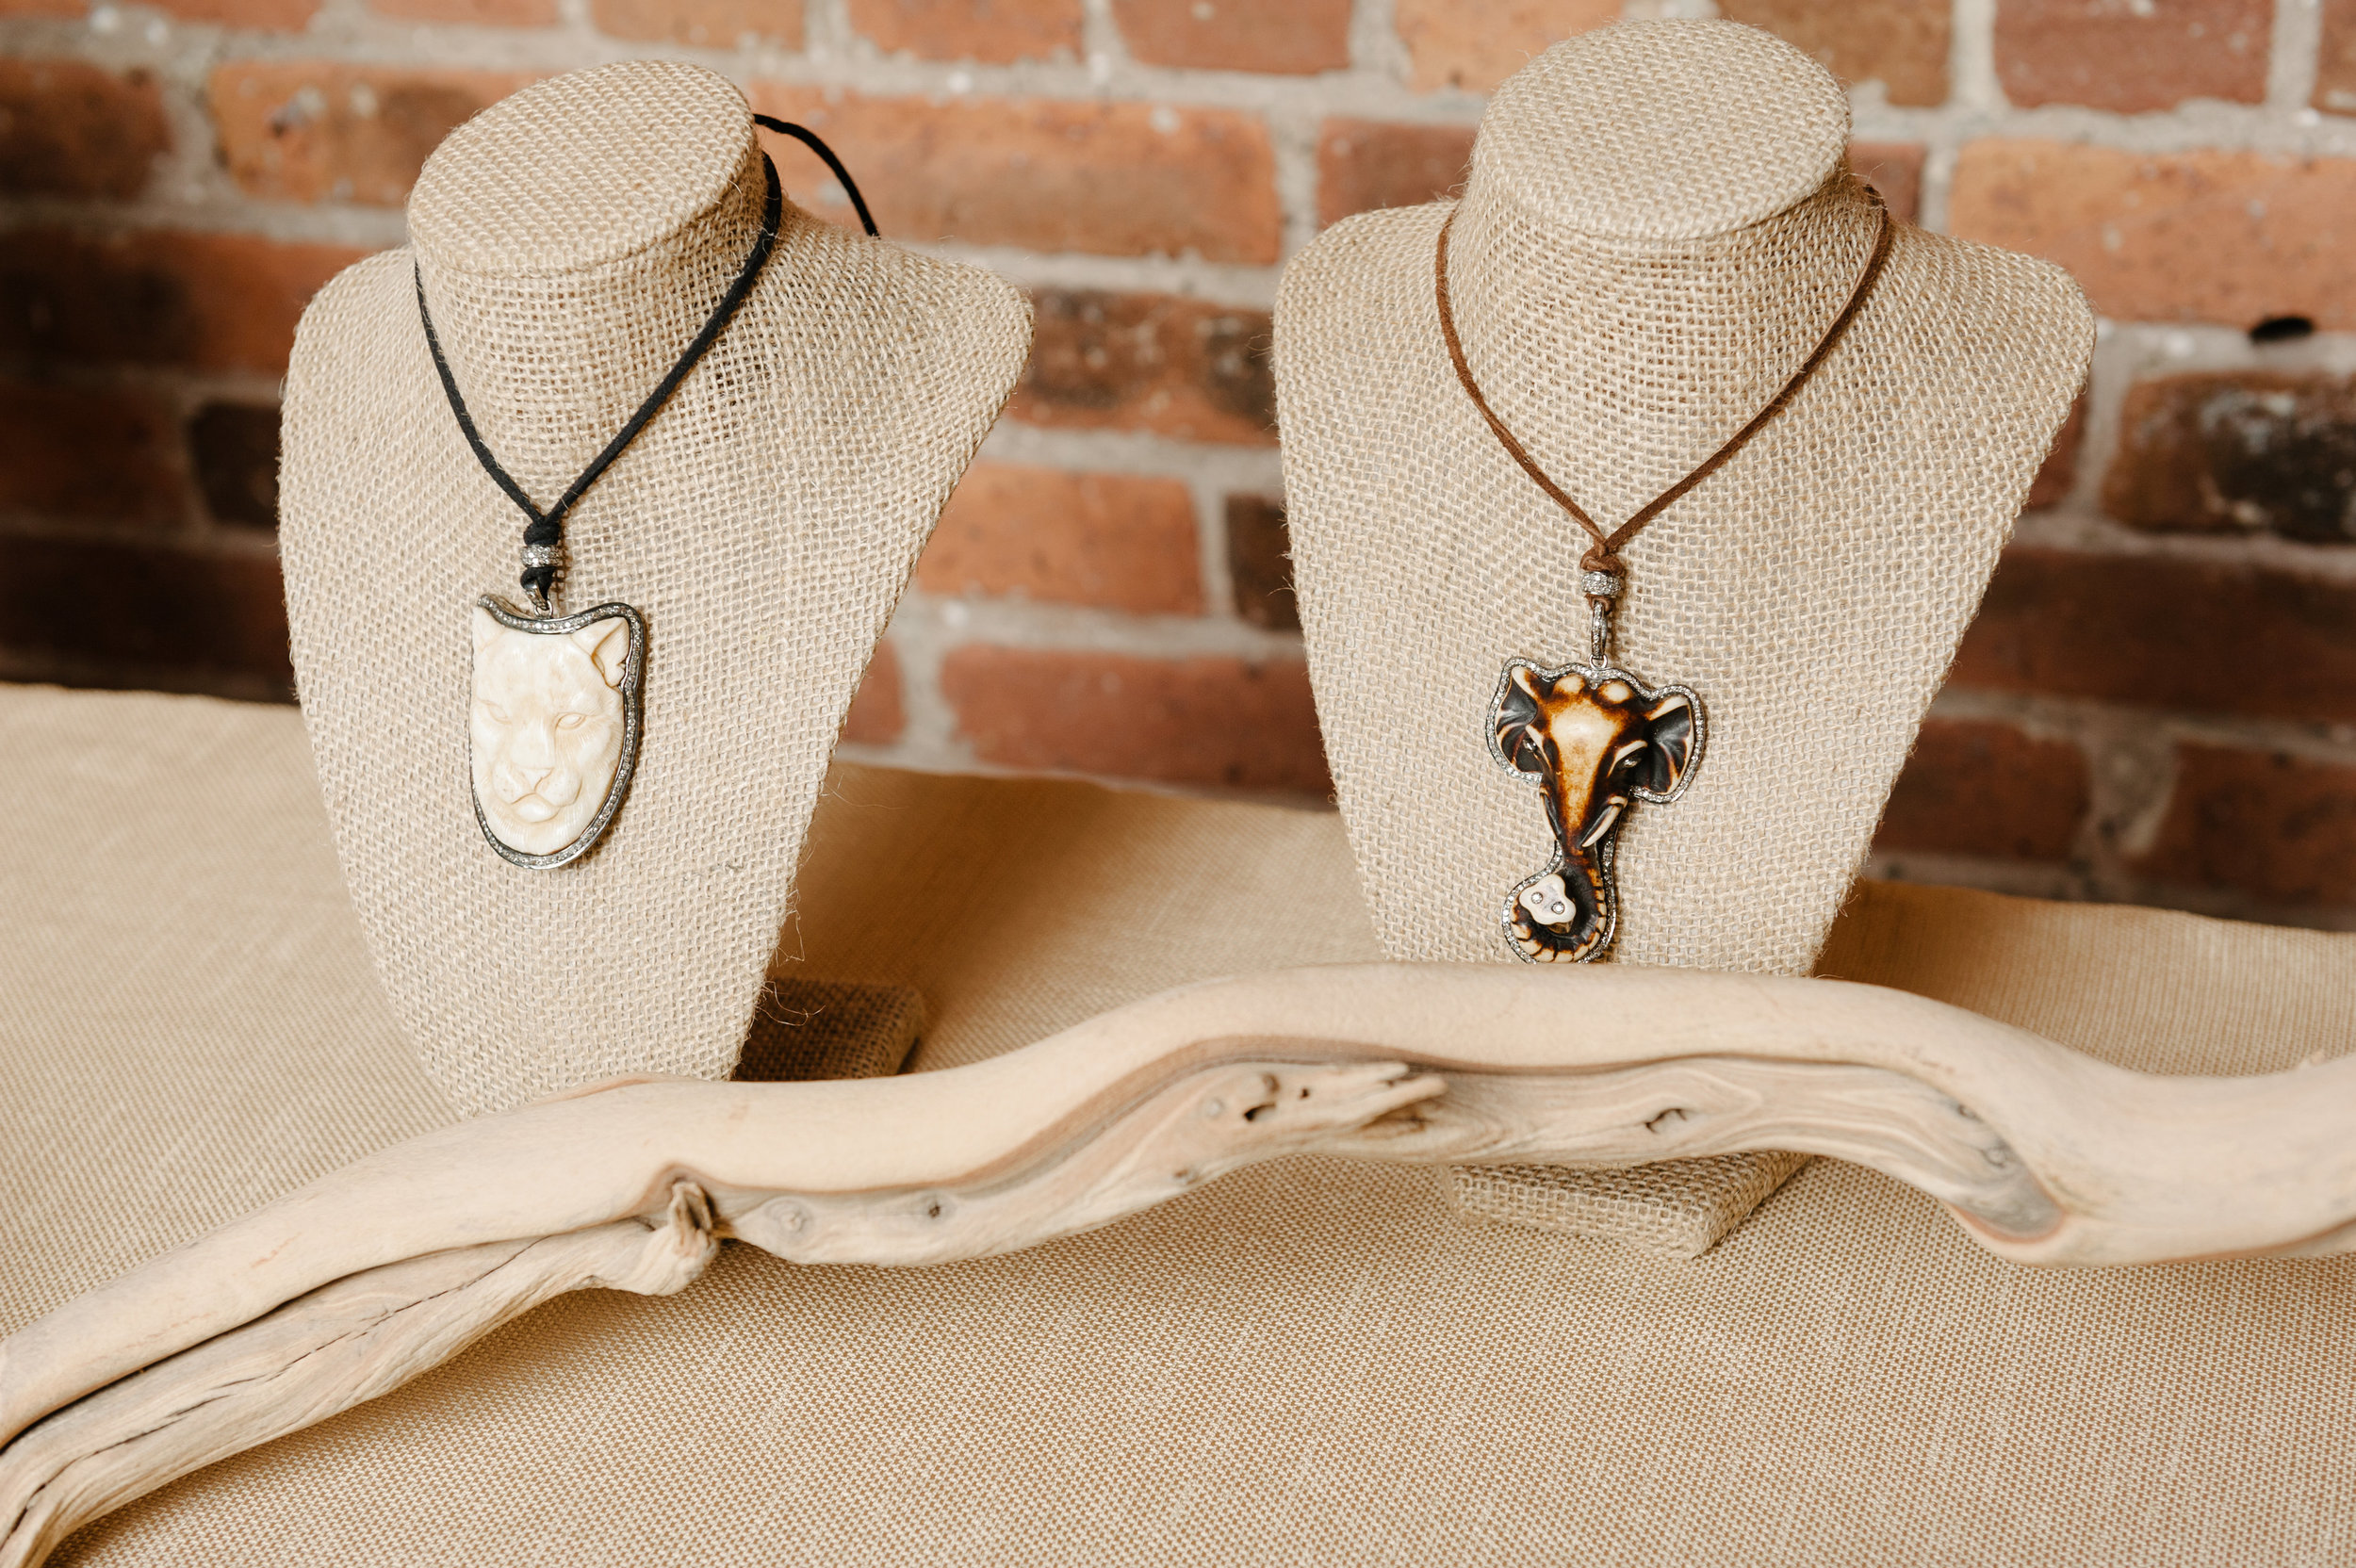 Lucky Elephant Hand Carved Bone Pendant In Sterling Silver And Black Rhodium With Champagne Diamonds On A Brown Suede Adjustable Cord Necklace Rox By Two